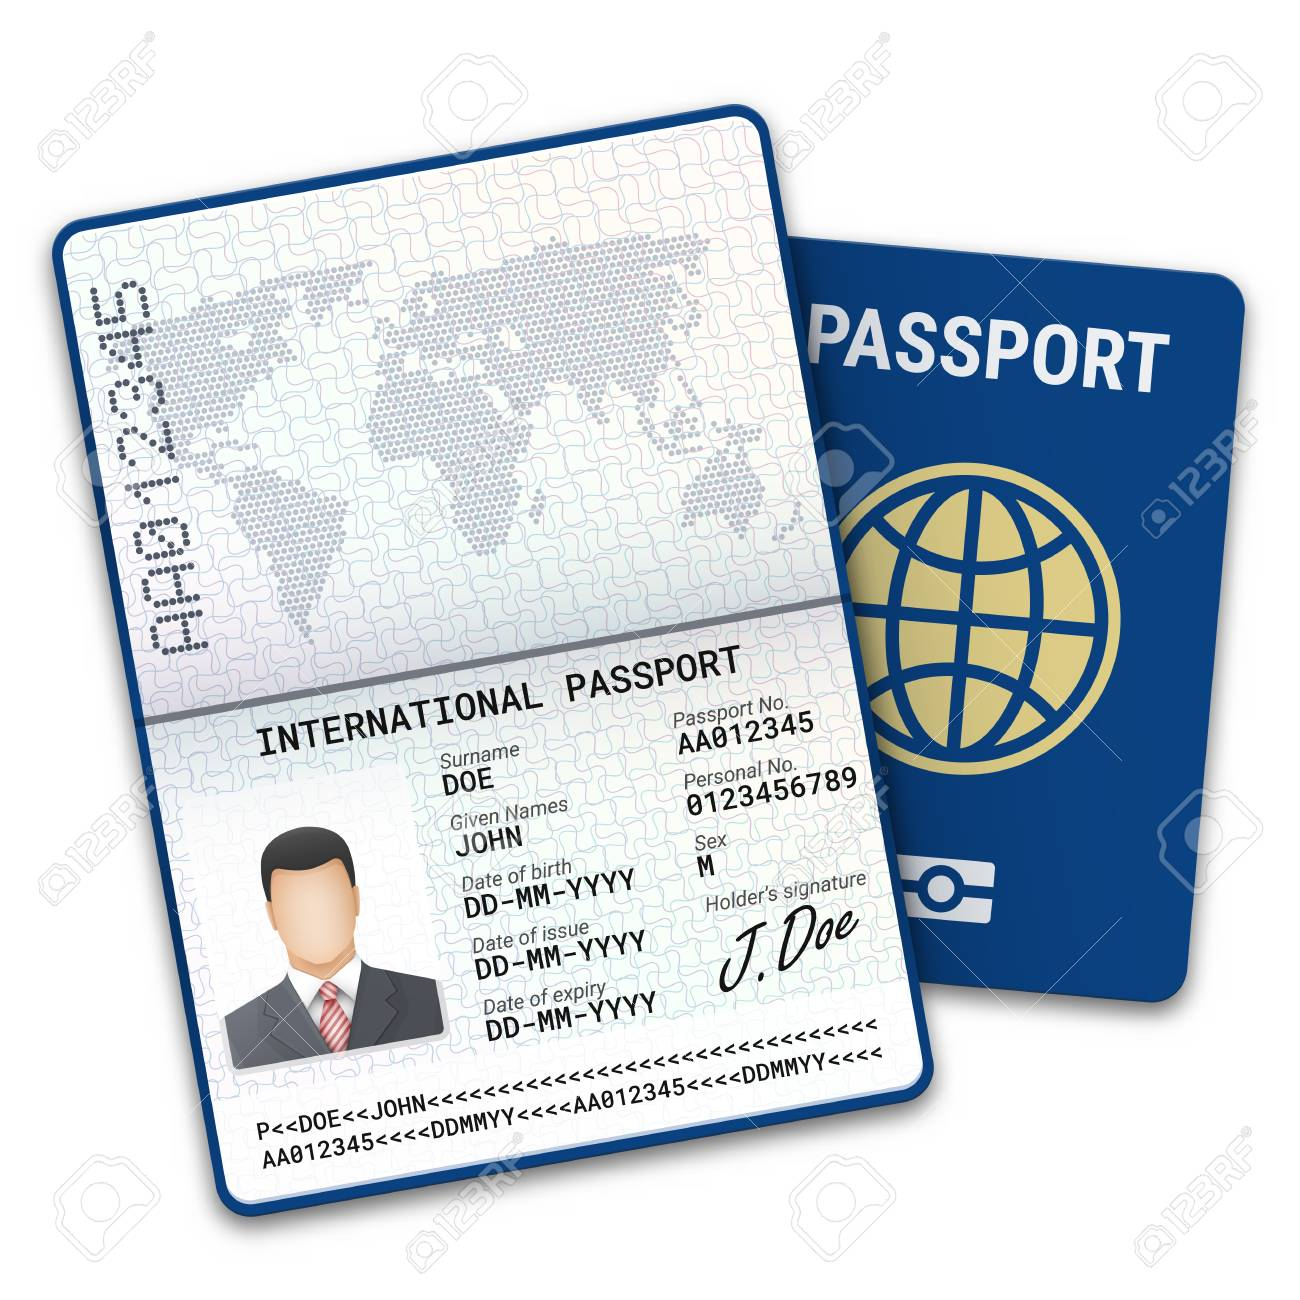 International male passport template with biometric data identification and sample of photo, signature and other personal data. Vector illustration - 96844540